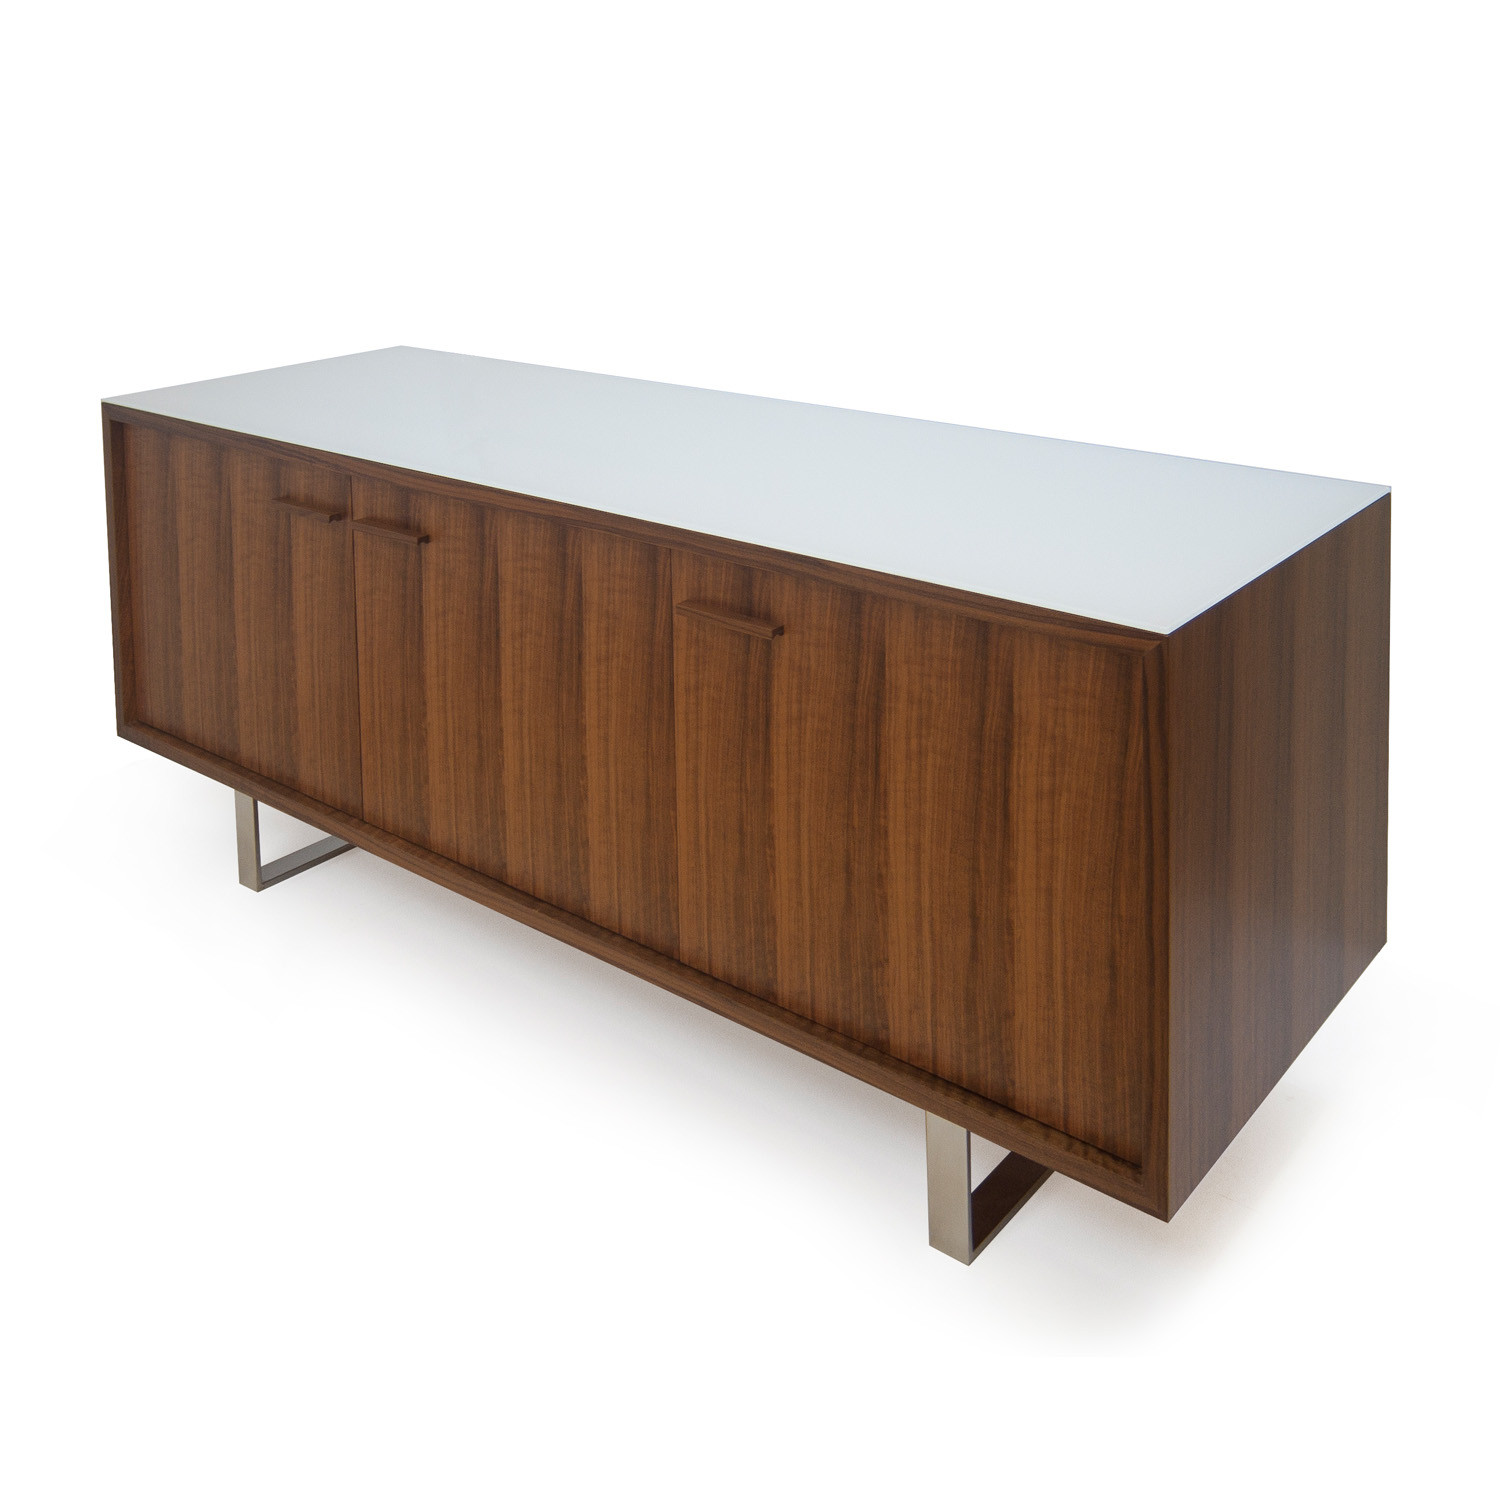 Series 2 Credenza Unit - Meeting Room Storage